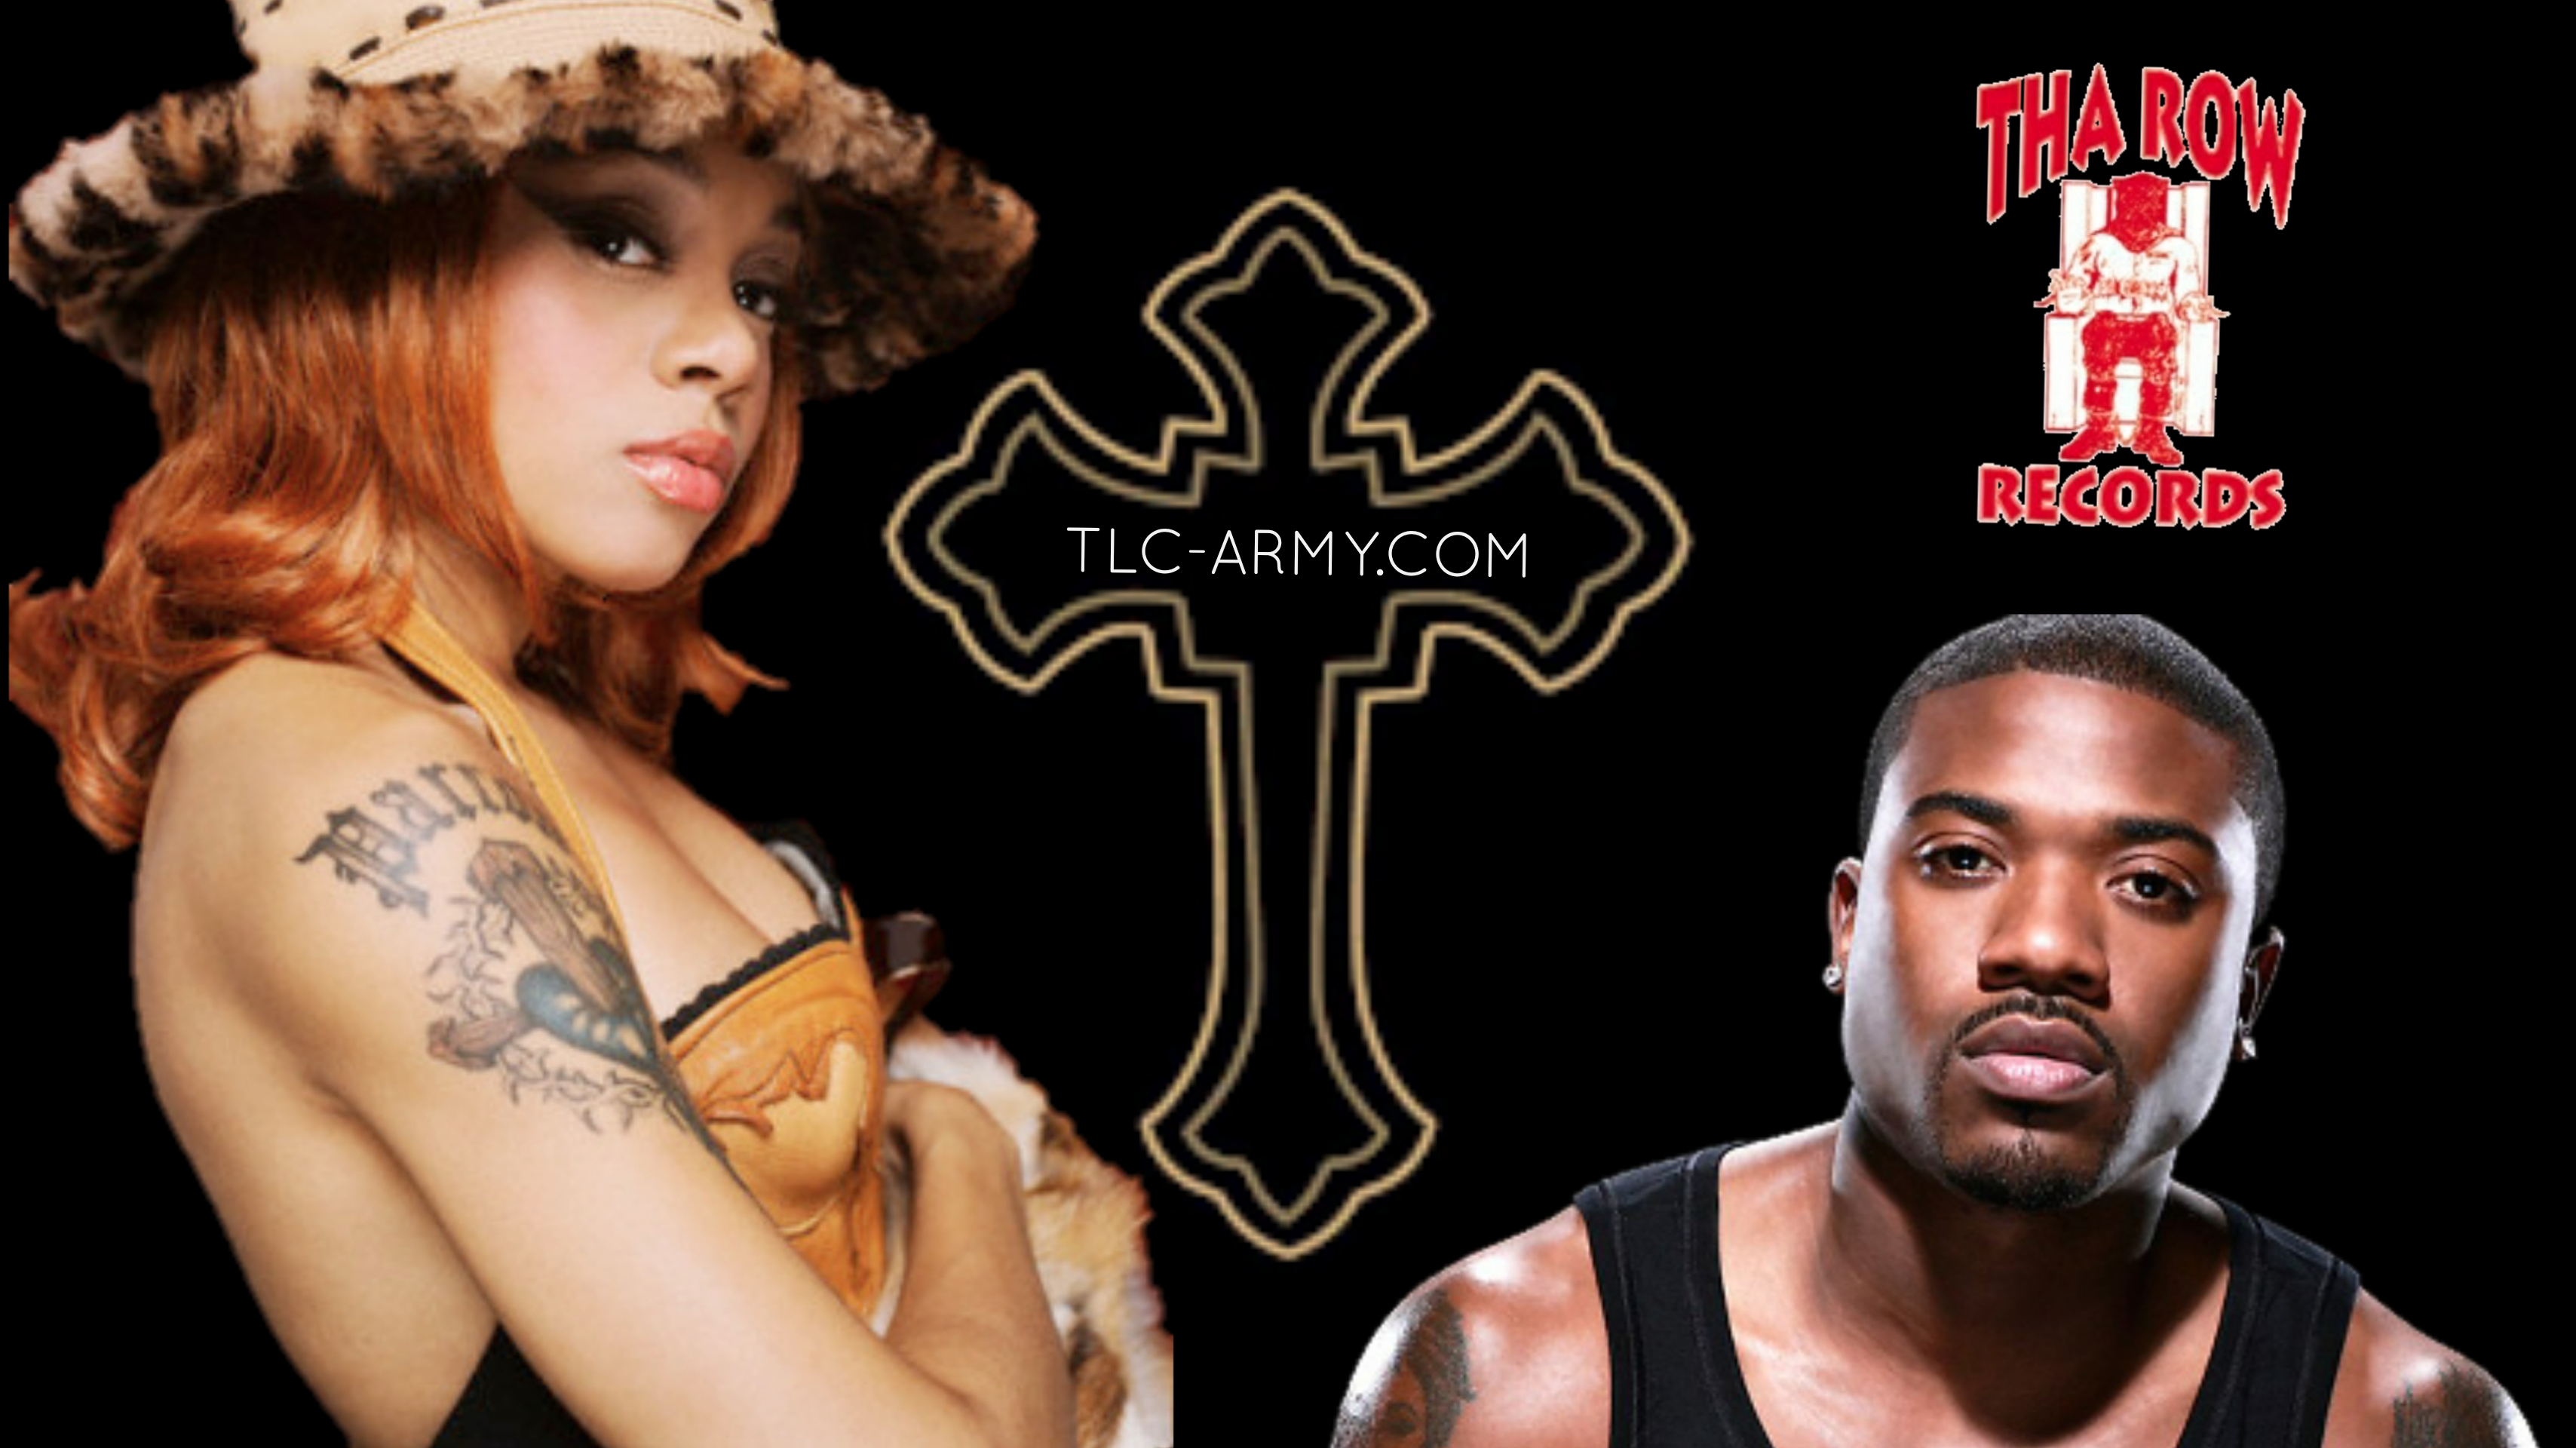 Left Eye's N.I.N.A Project For Death Row Features Ray-J (Full Album Link)